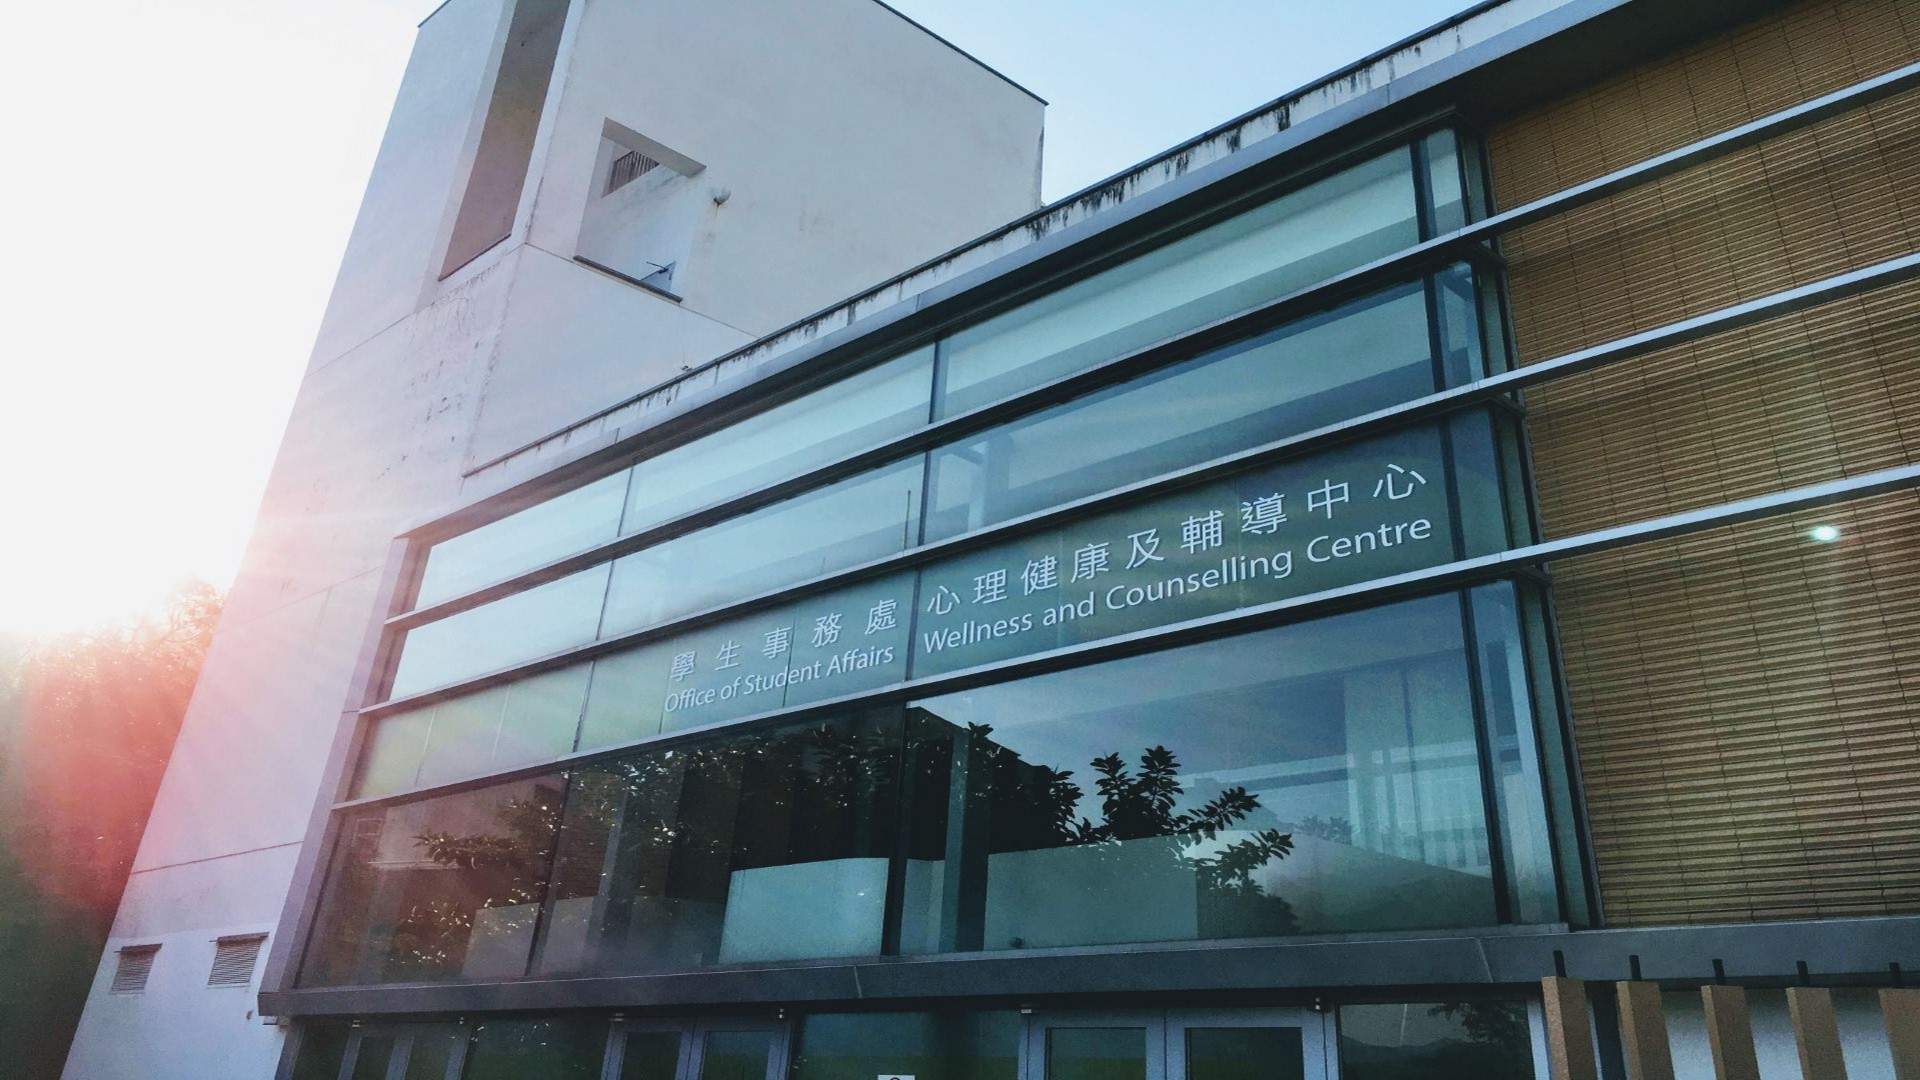 What Psychological Counselling in CUHK is about?